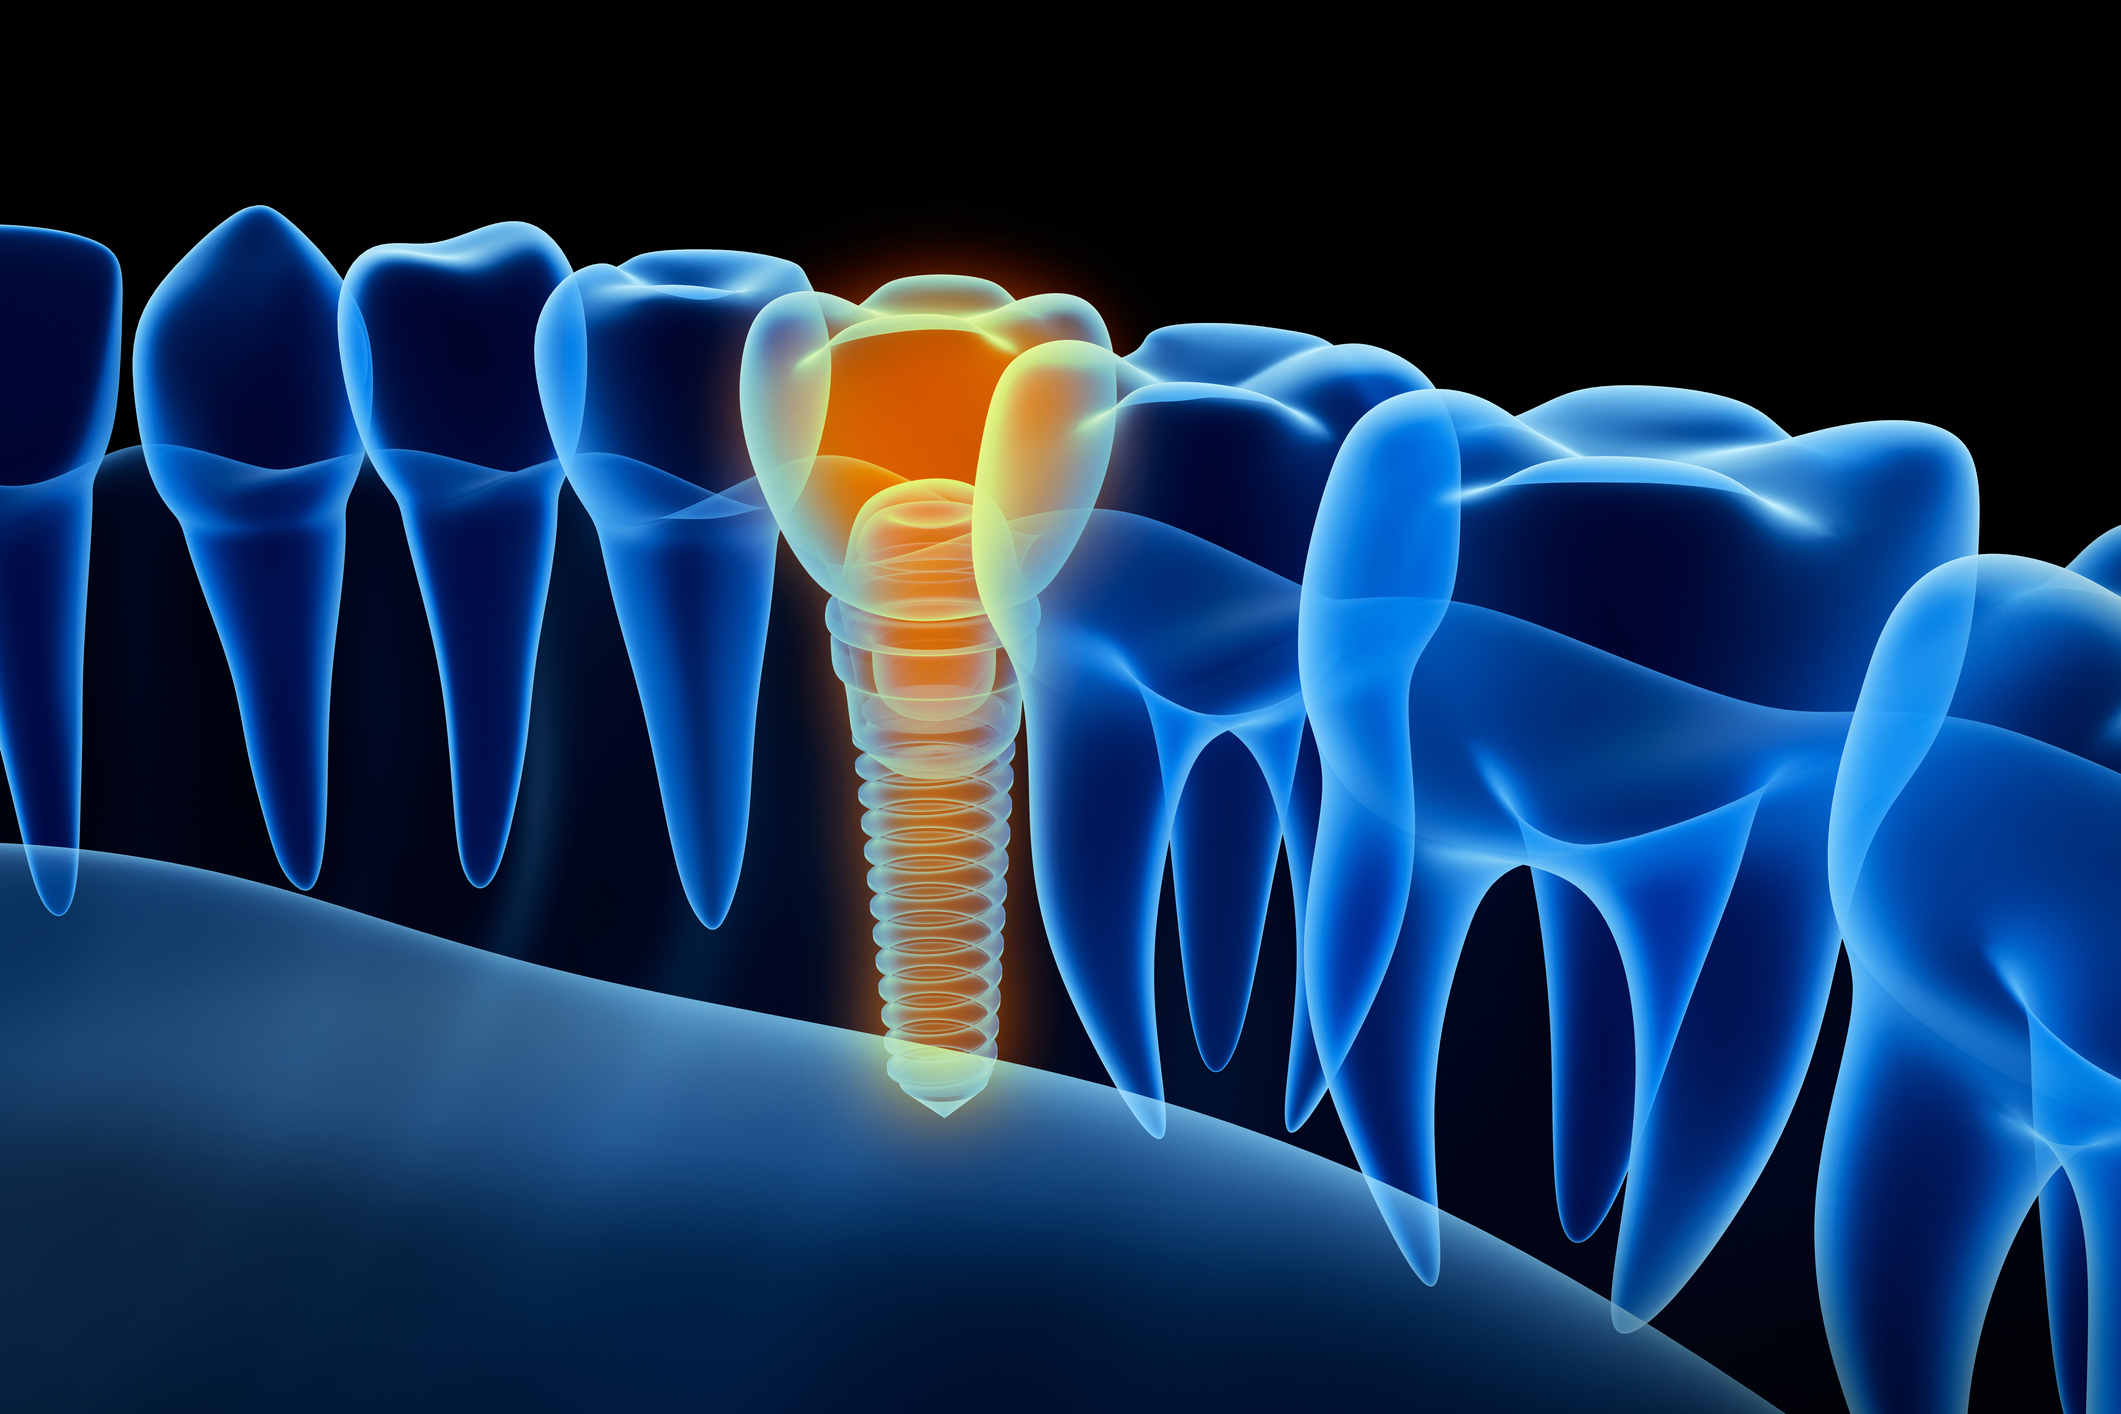 X-ray view of denture with implant.  Xray view. Medically accurate 3D illustration. Image credit: alex-mit, iStock